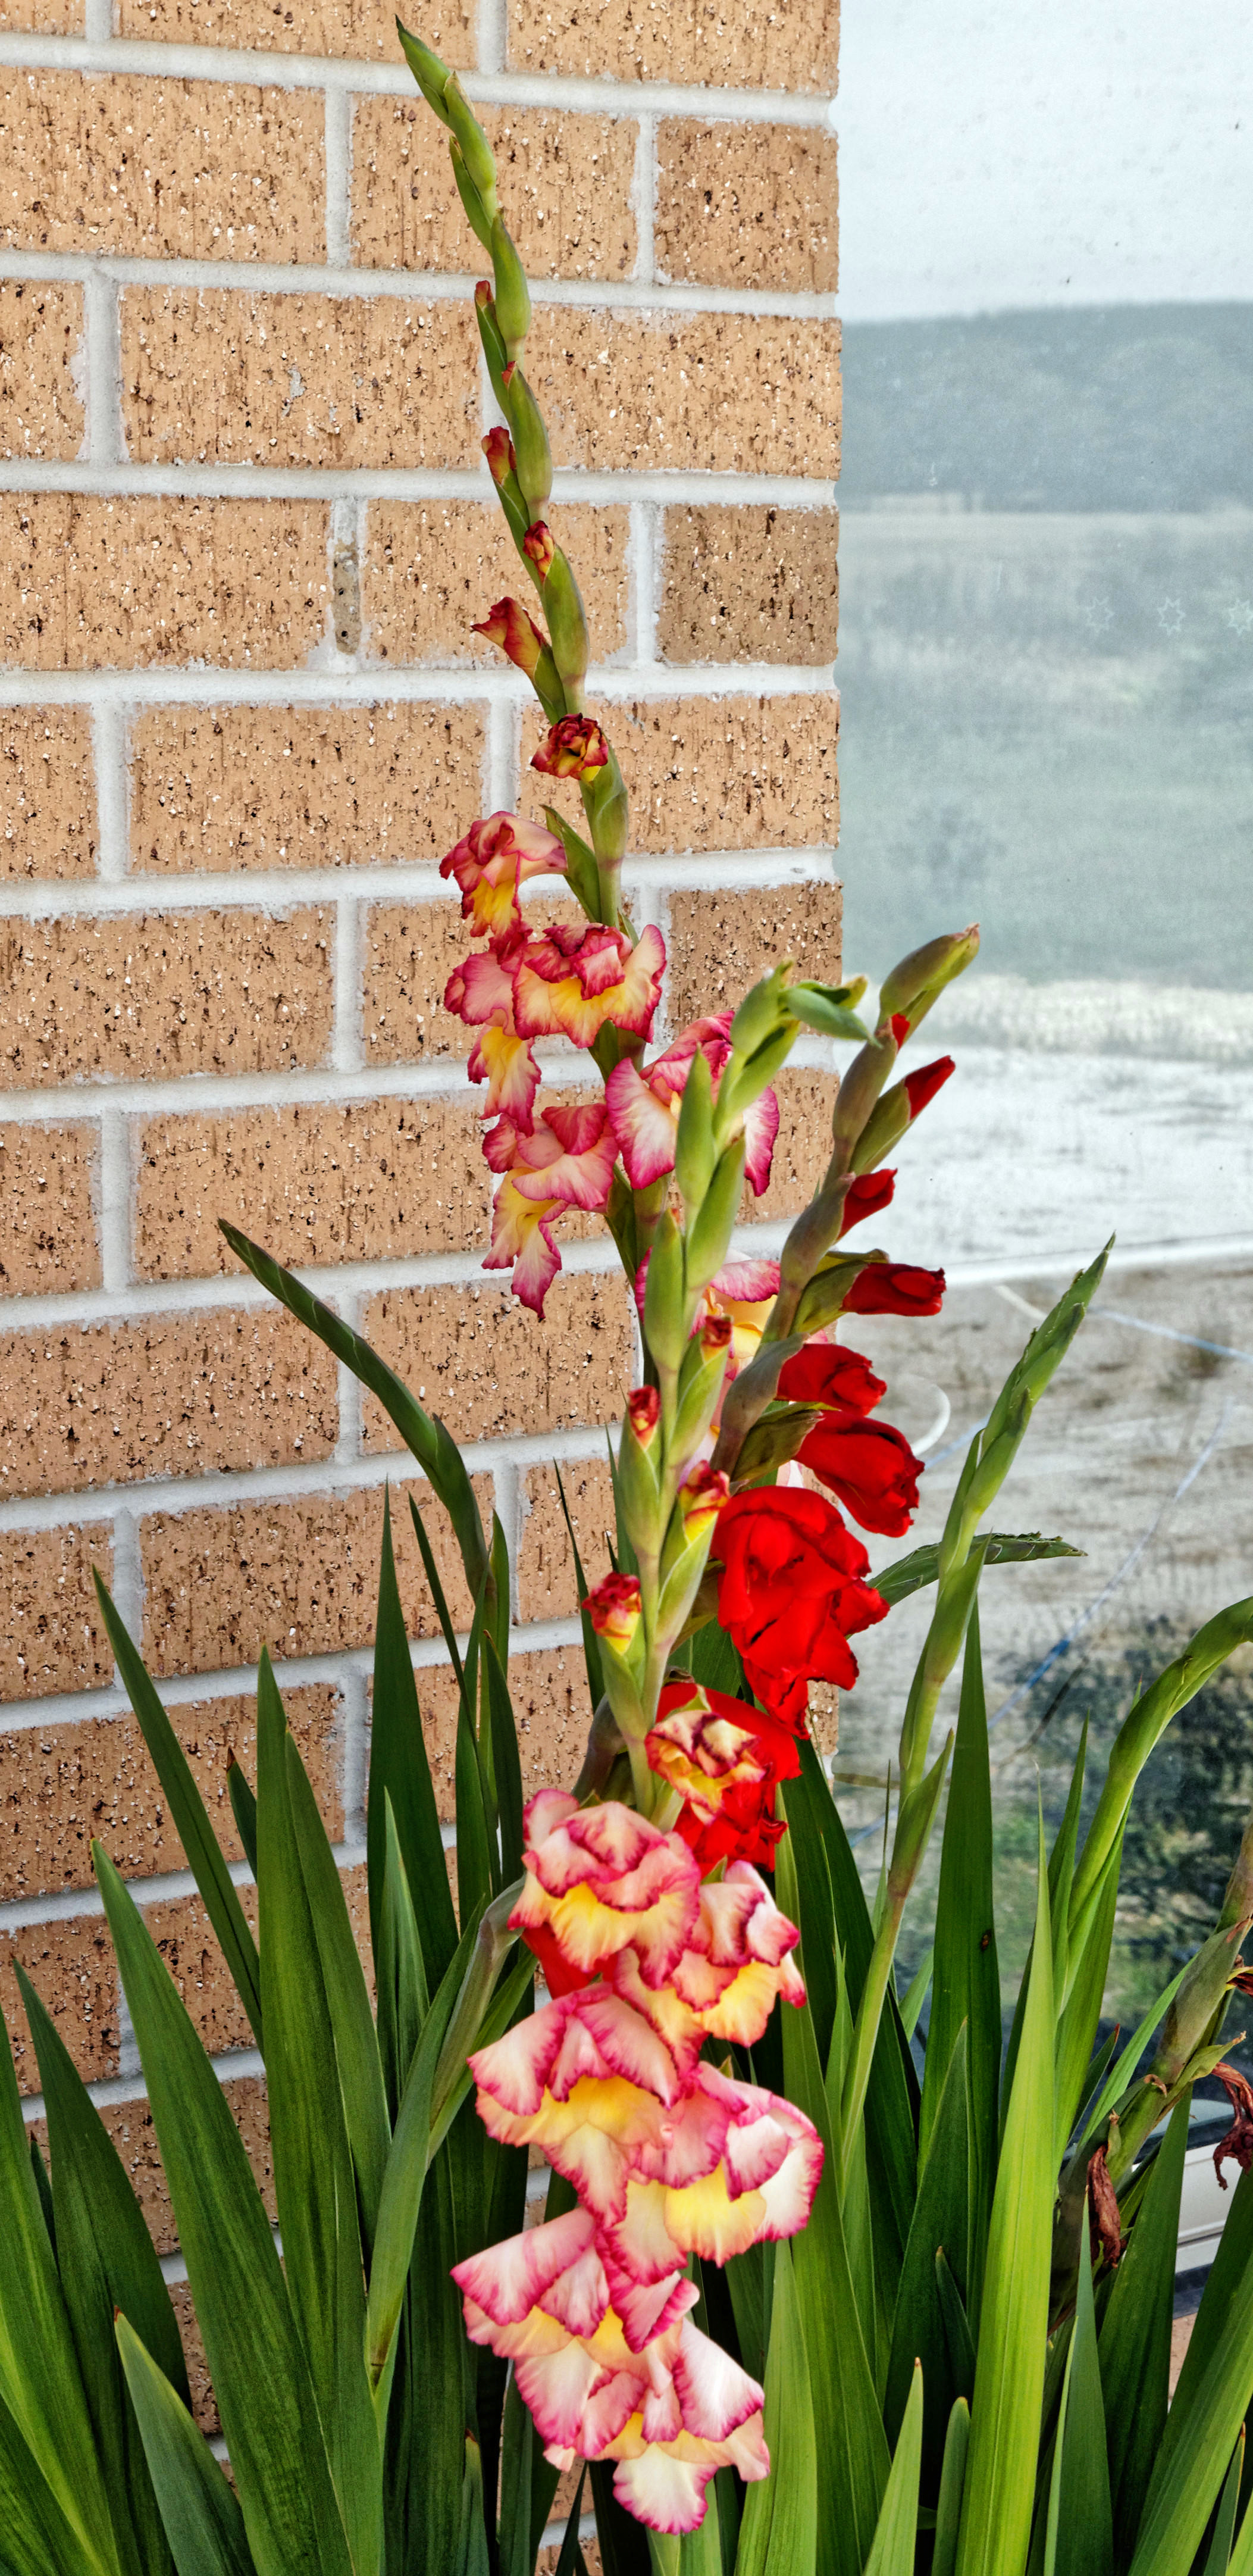 This should be Gladioli.jpeg.  Is it missing?